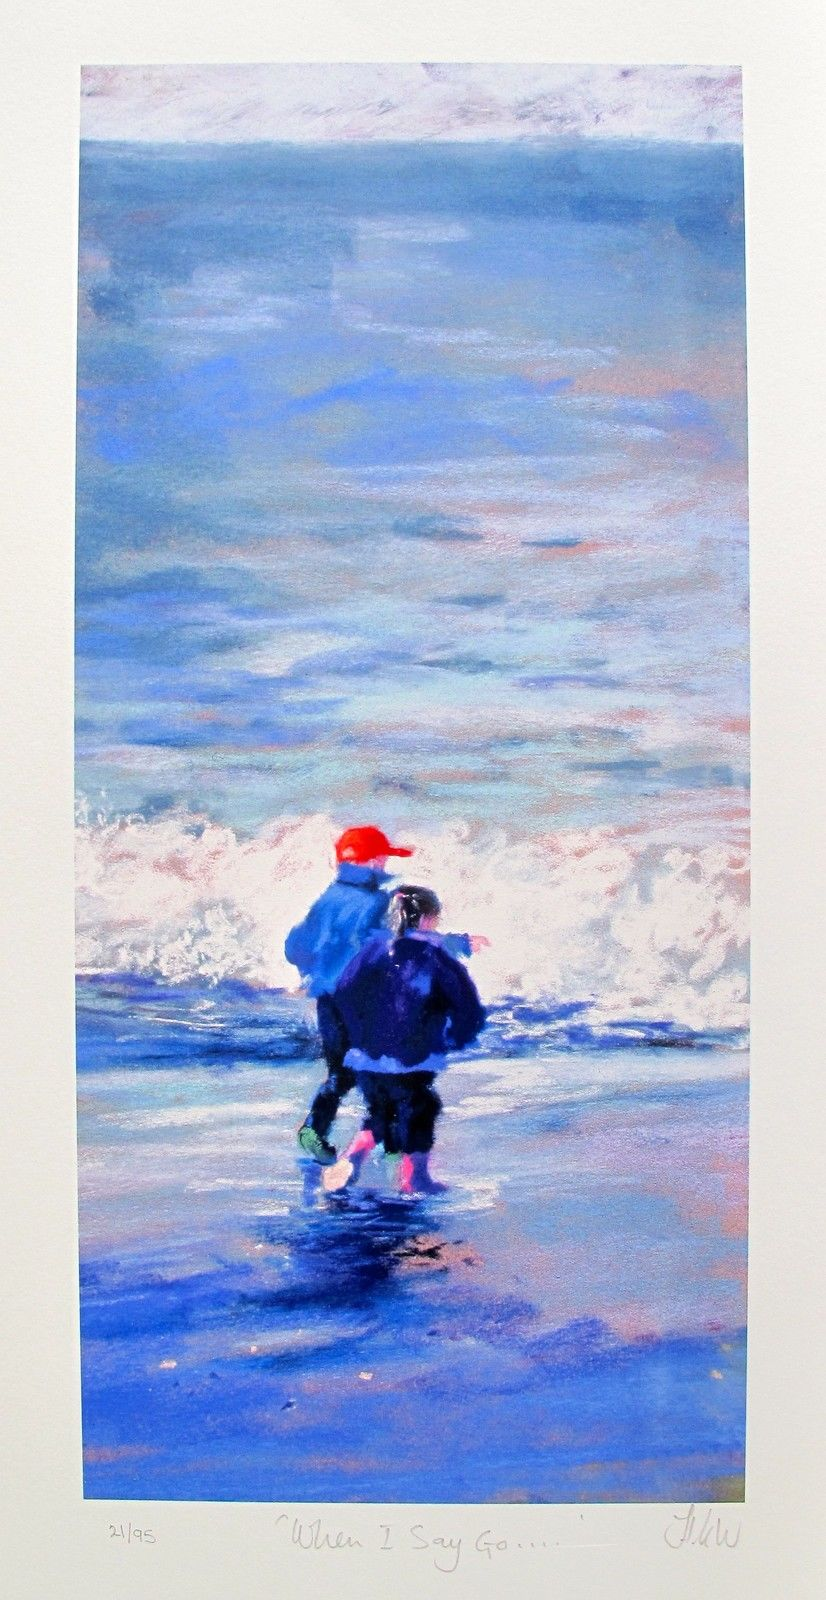 Nel Whatmore WHEN I SAY GO... Hand Signed Limited Edition Giclee